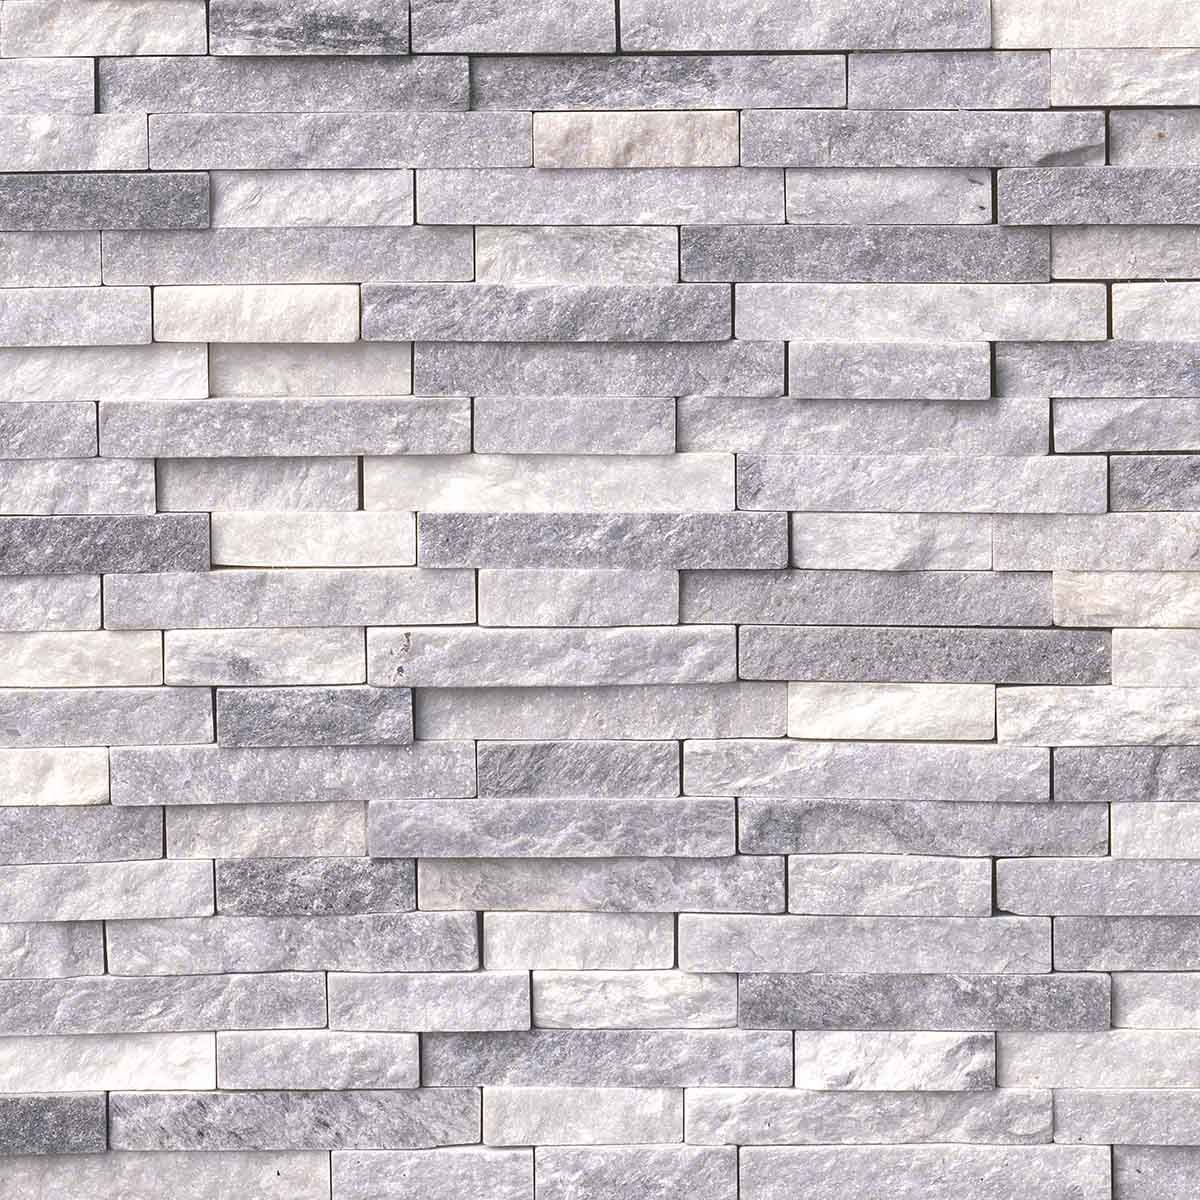 alaskan gray splitface interlocking pattern mosaics home decor